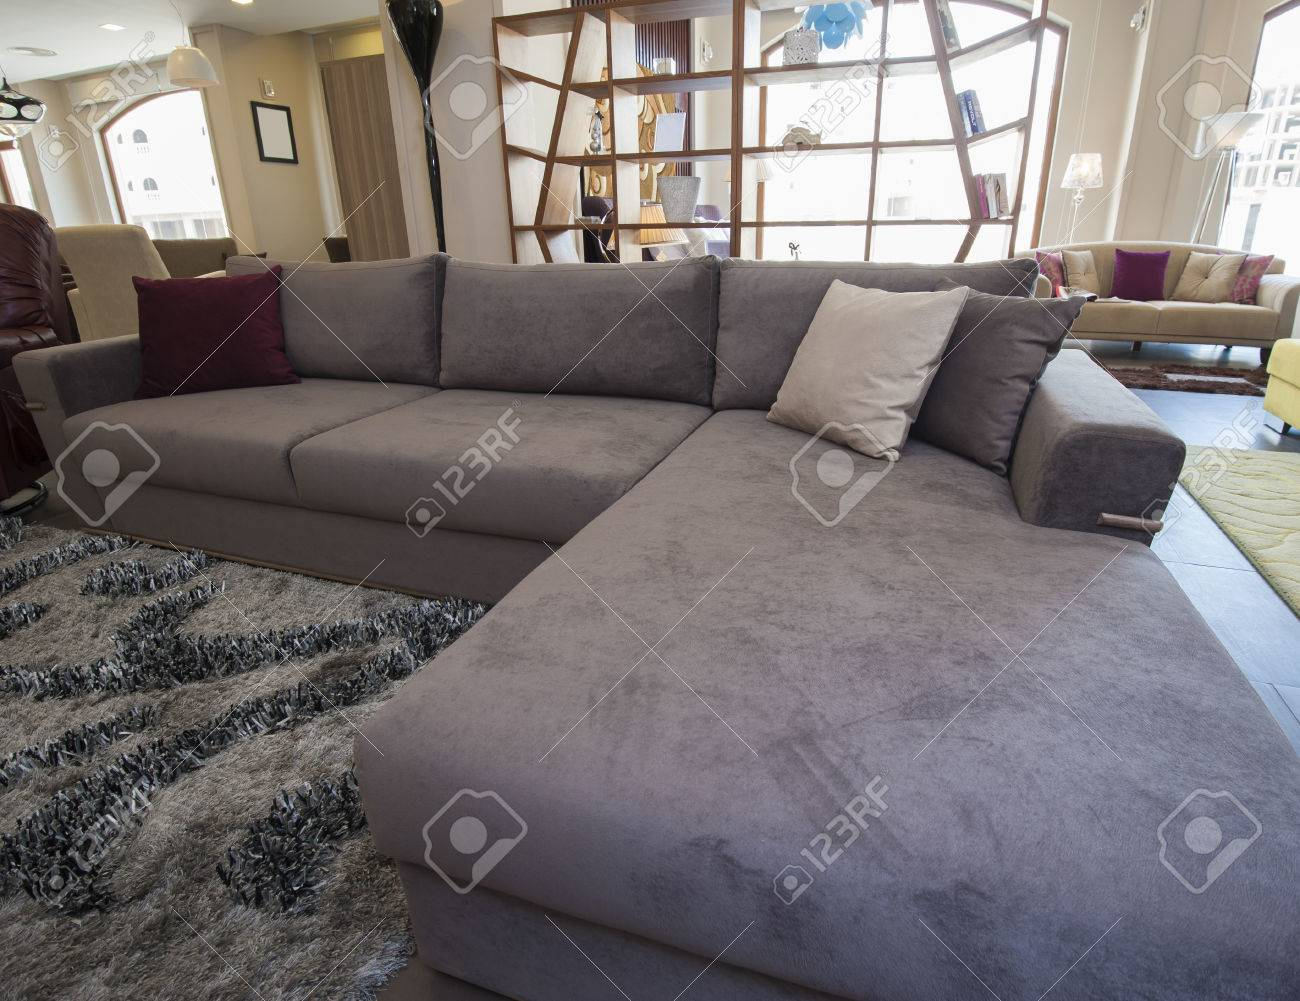 Large L Shaped Corner Sofa In Living Room Furniture Show Home Stock